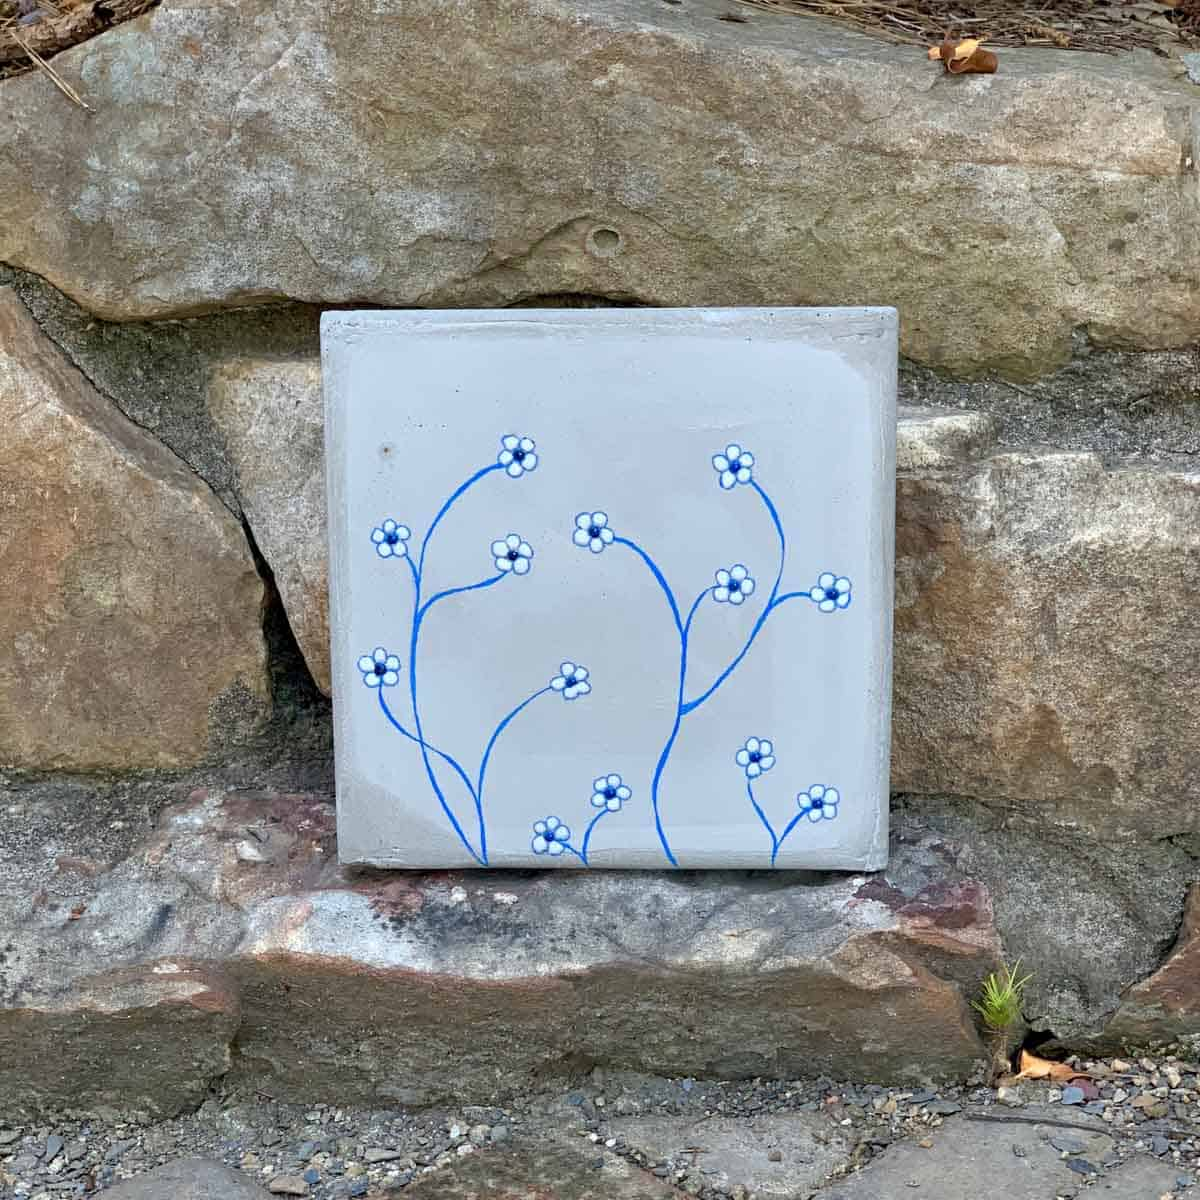 Outdoor DIY Concrete Wall Tile With Flowers against stones